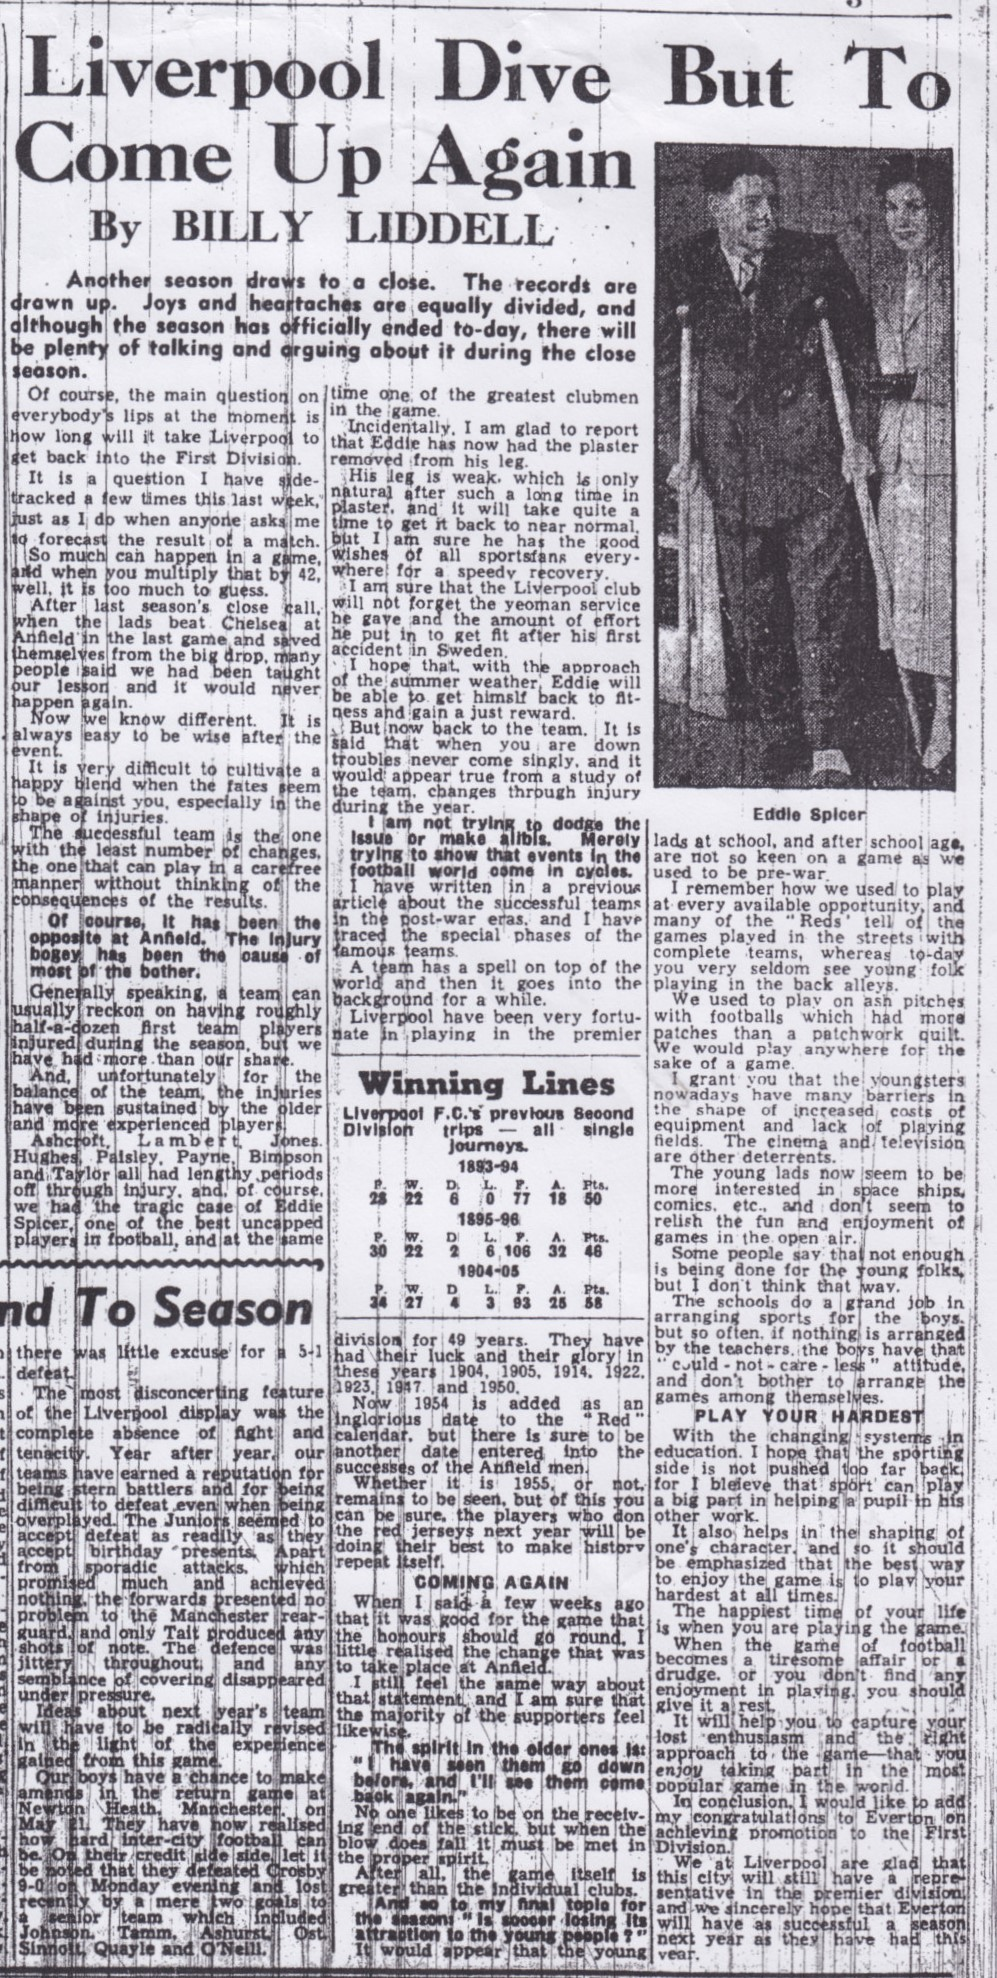 Liverpool to come up again - from the Echo in May 1954